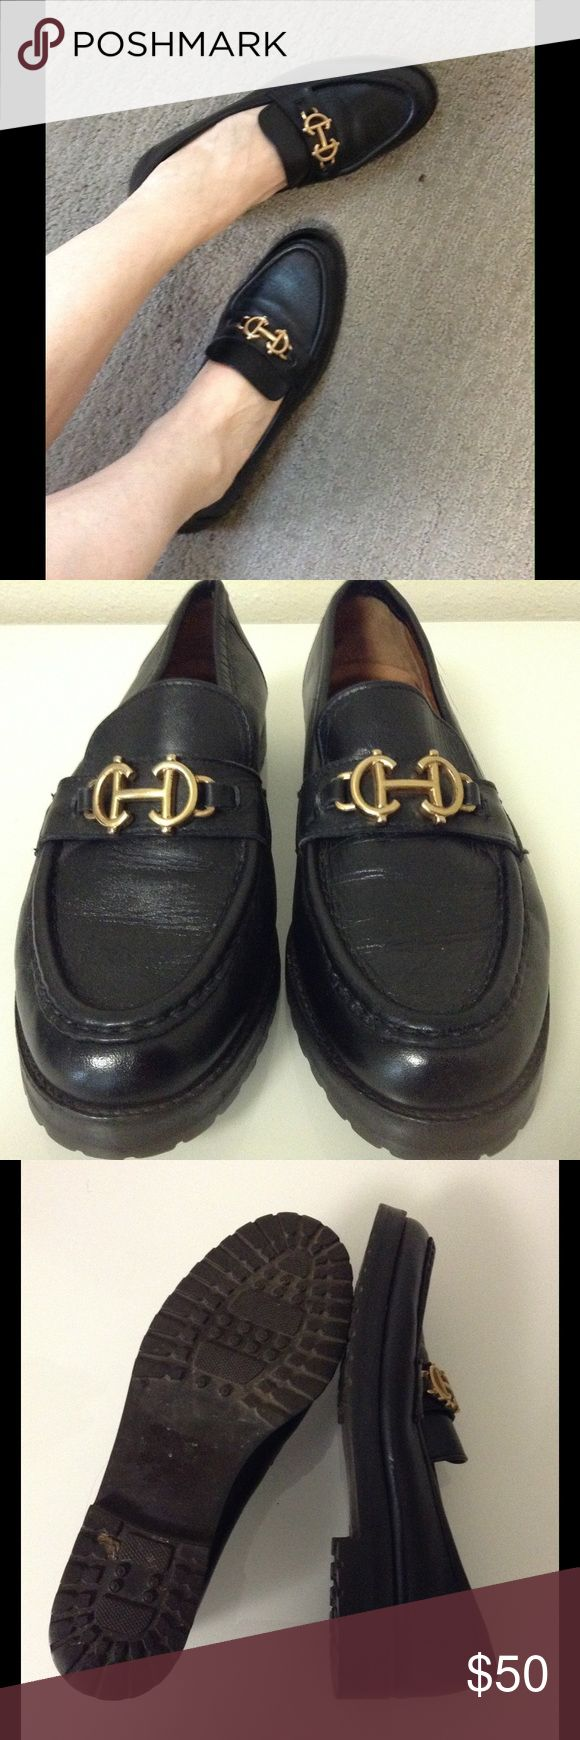 COLE HAAN Loafers Italian Chic w/ Black Lug Sole 8 Super stylish Cole Haan loafers that are part preppy & part jetsetter. In really great condition for vintage. They seem like they've been well cared for. The fit and vibe remind me of the classic, effortless Italian glam of Gucci horse-bit loafers. Just slip on your Sophia Loren-fabulous oversized shades, add a Vespa, have some of the hot local eye-candy hop on back, and off you go to live la fashionable dolce vita!! Save 30% automatically…